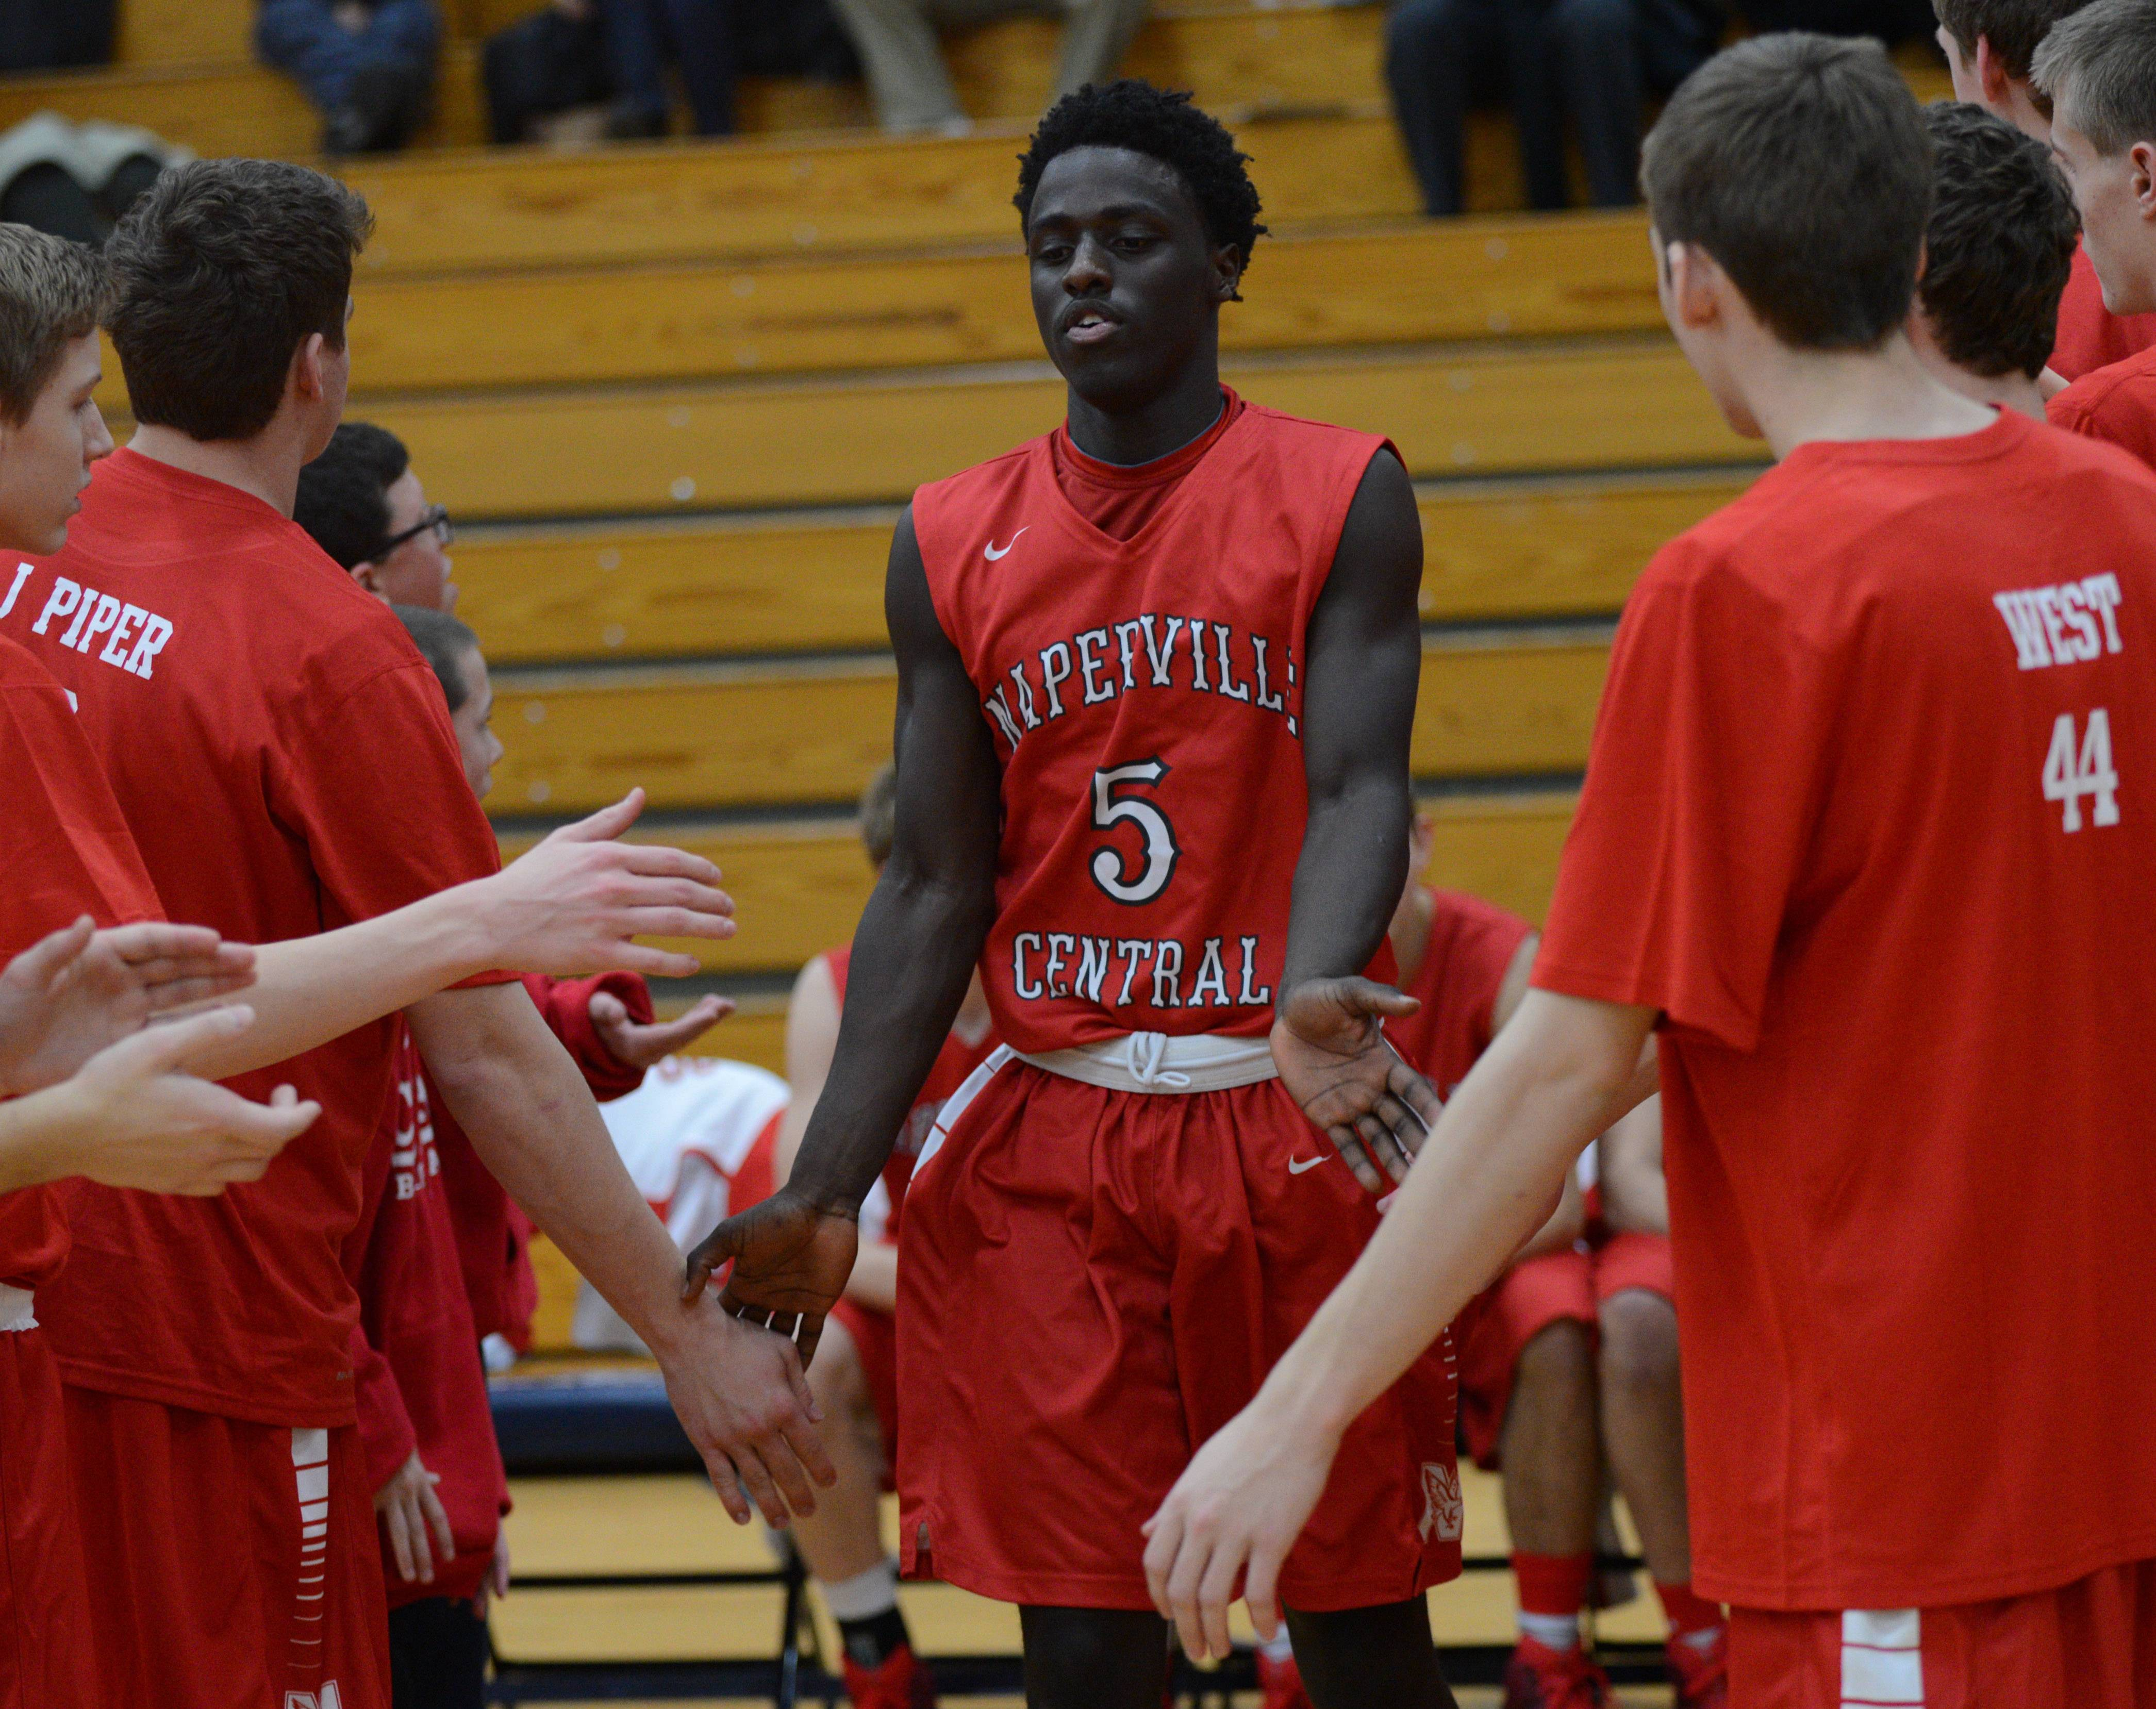 Addison Trail hosted Naperville Central Wednesday evening for boys basketball.